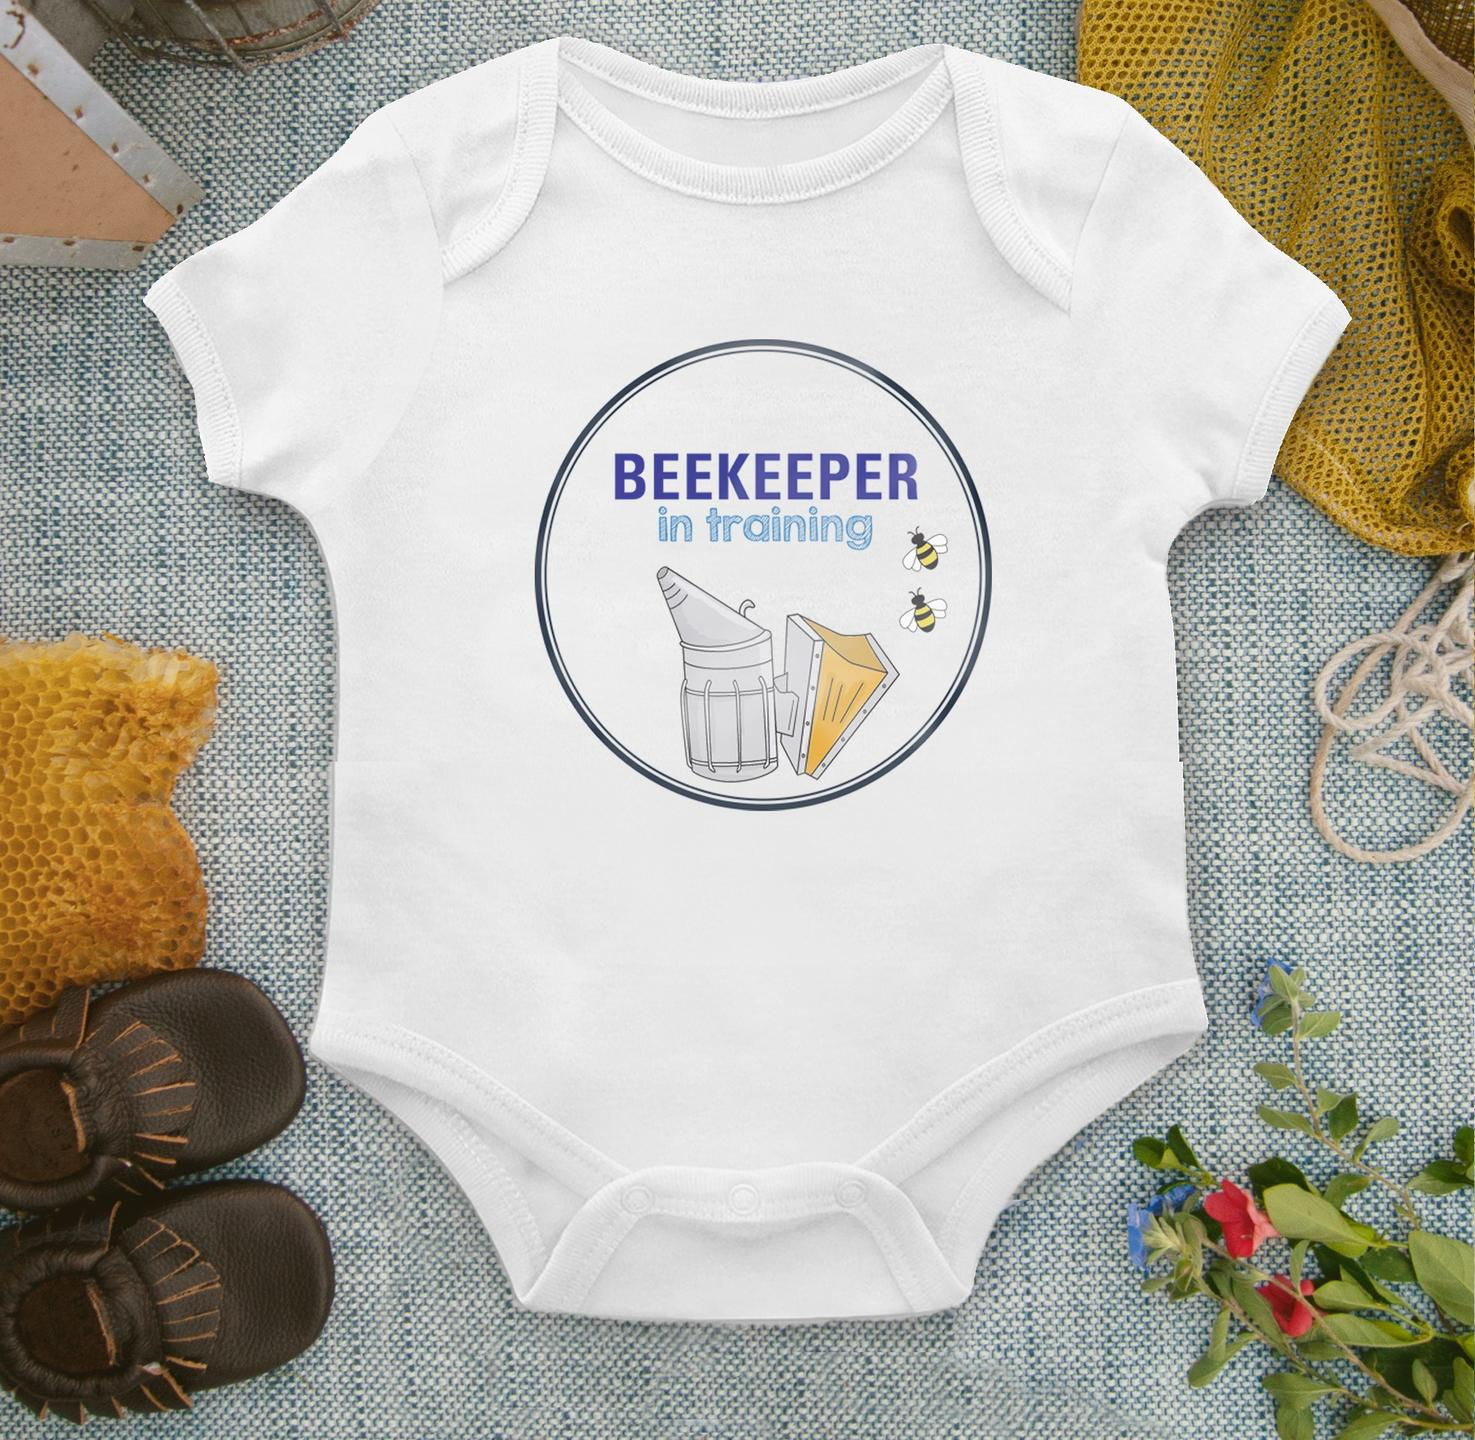 beekeeper in training onesie